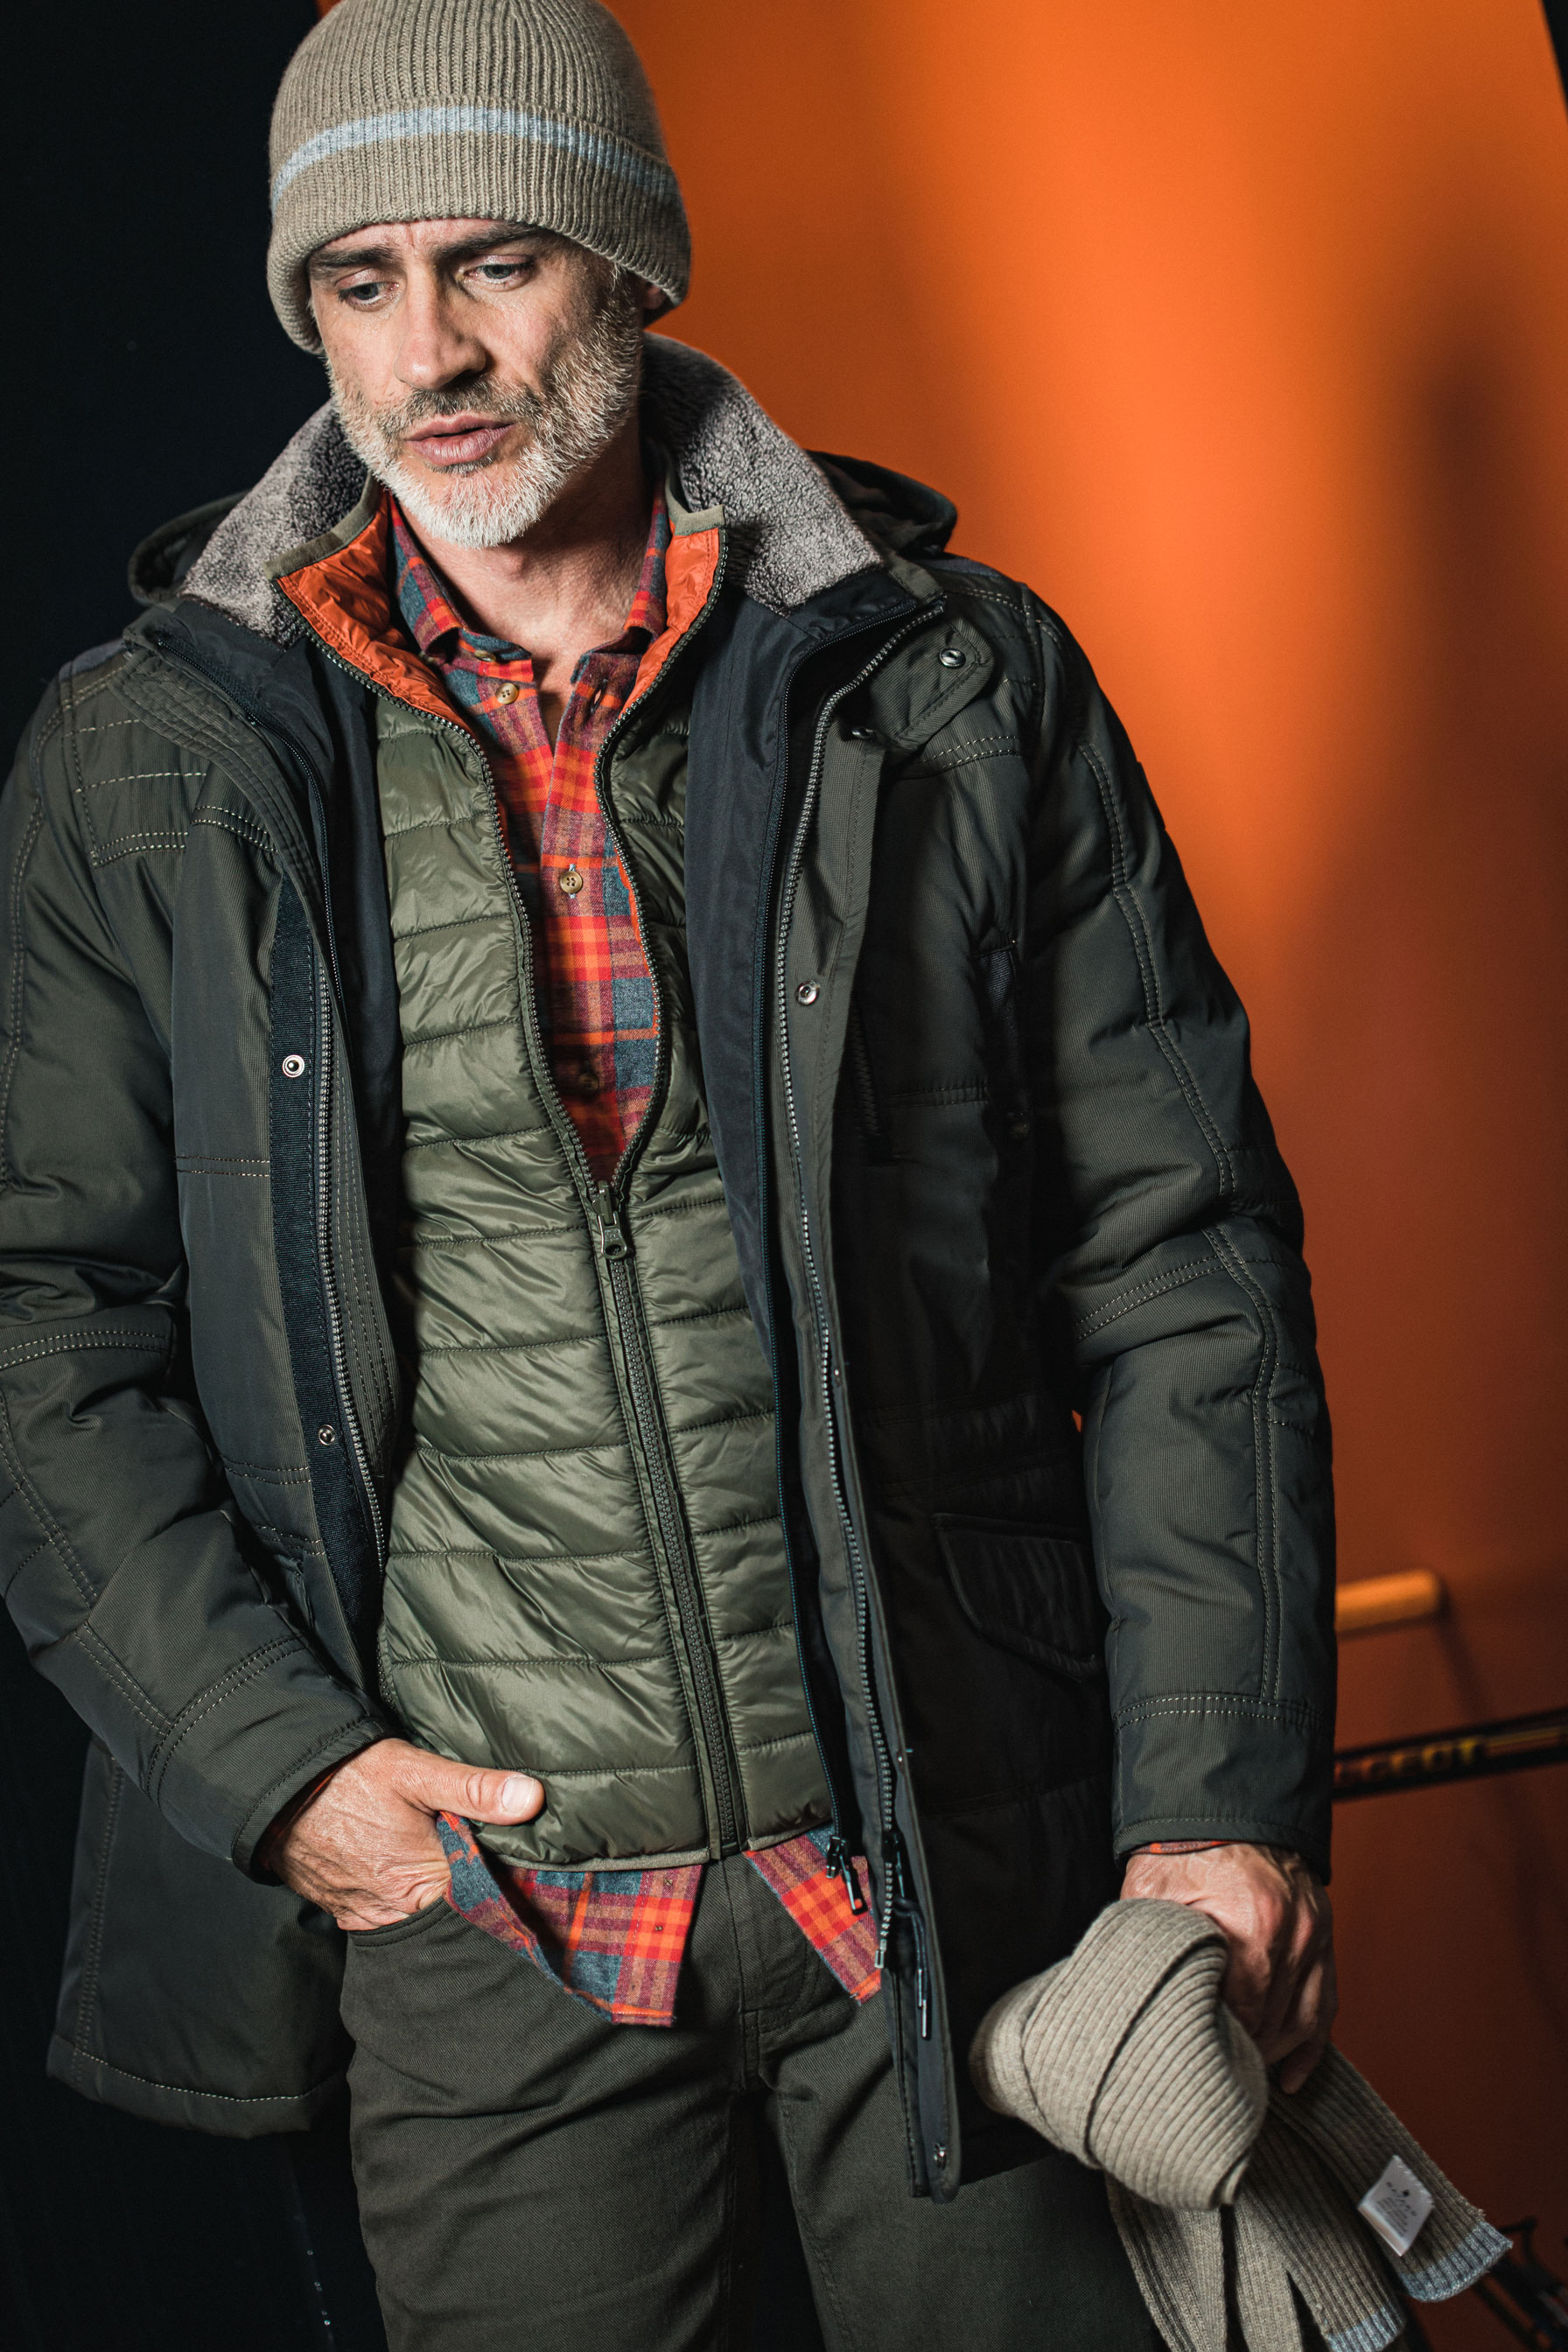 Bayard collection automne-hiver 2019 sportswear